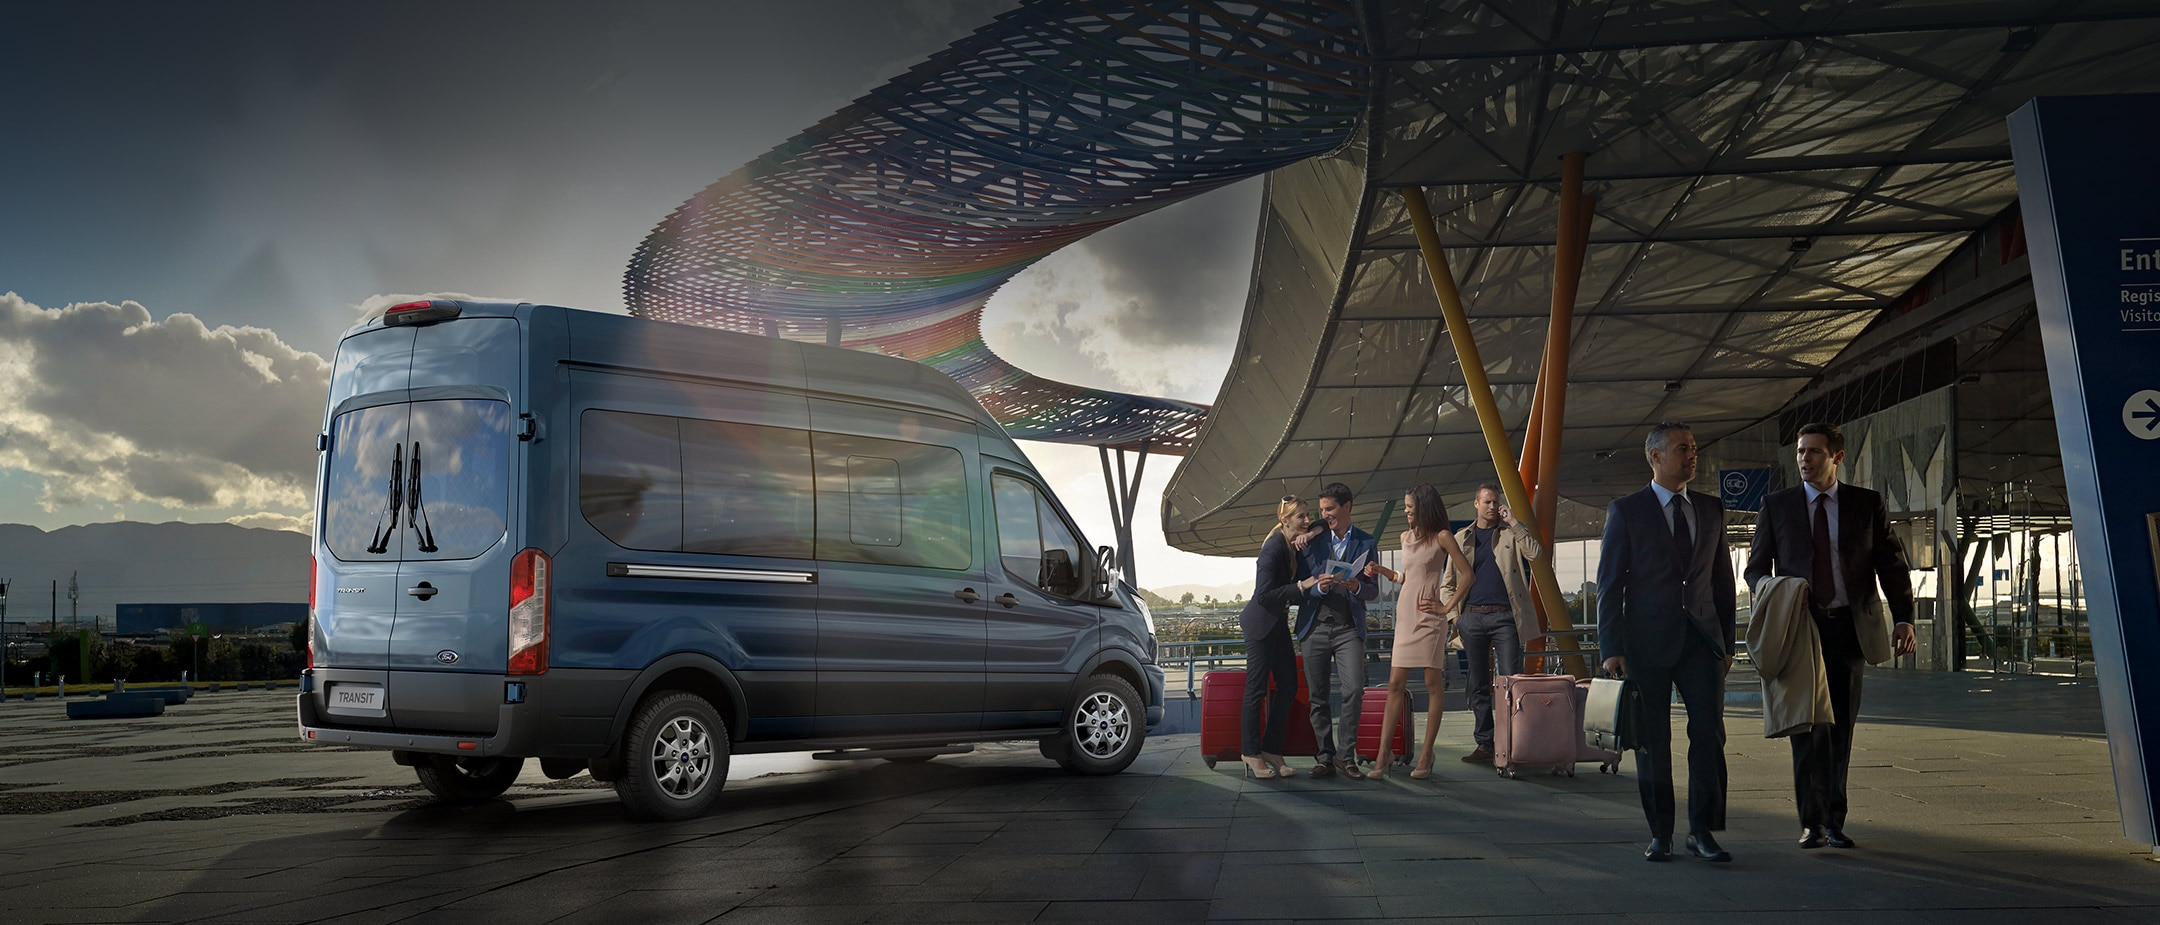 All New Ford Transit Minibus rear view parked outside airport